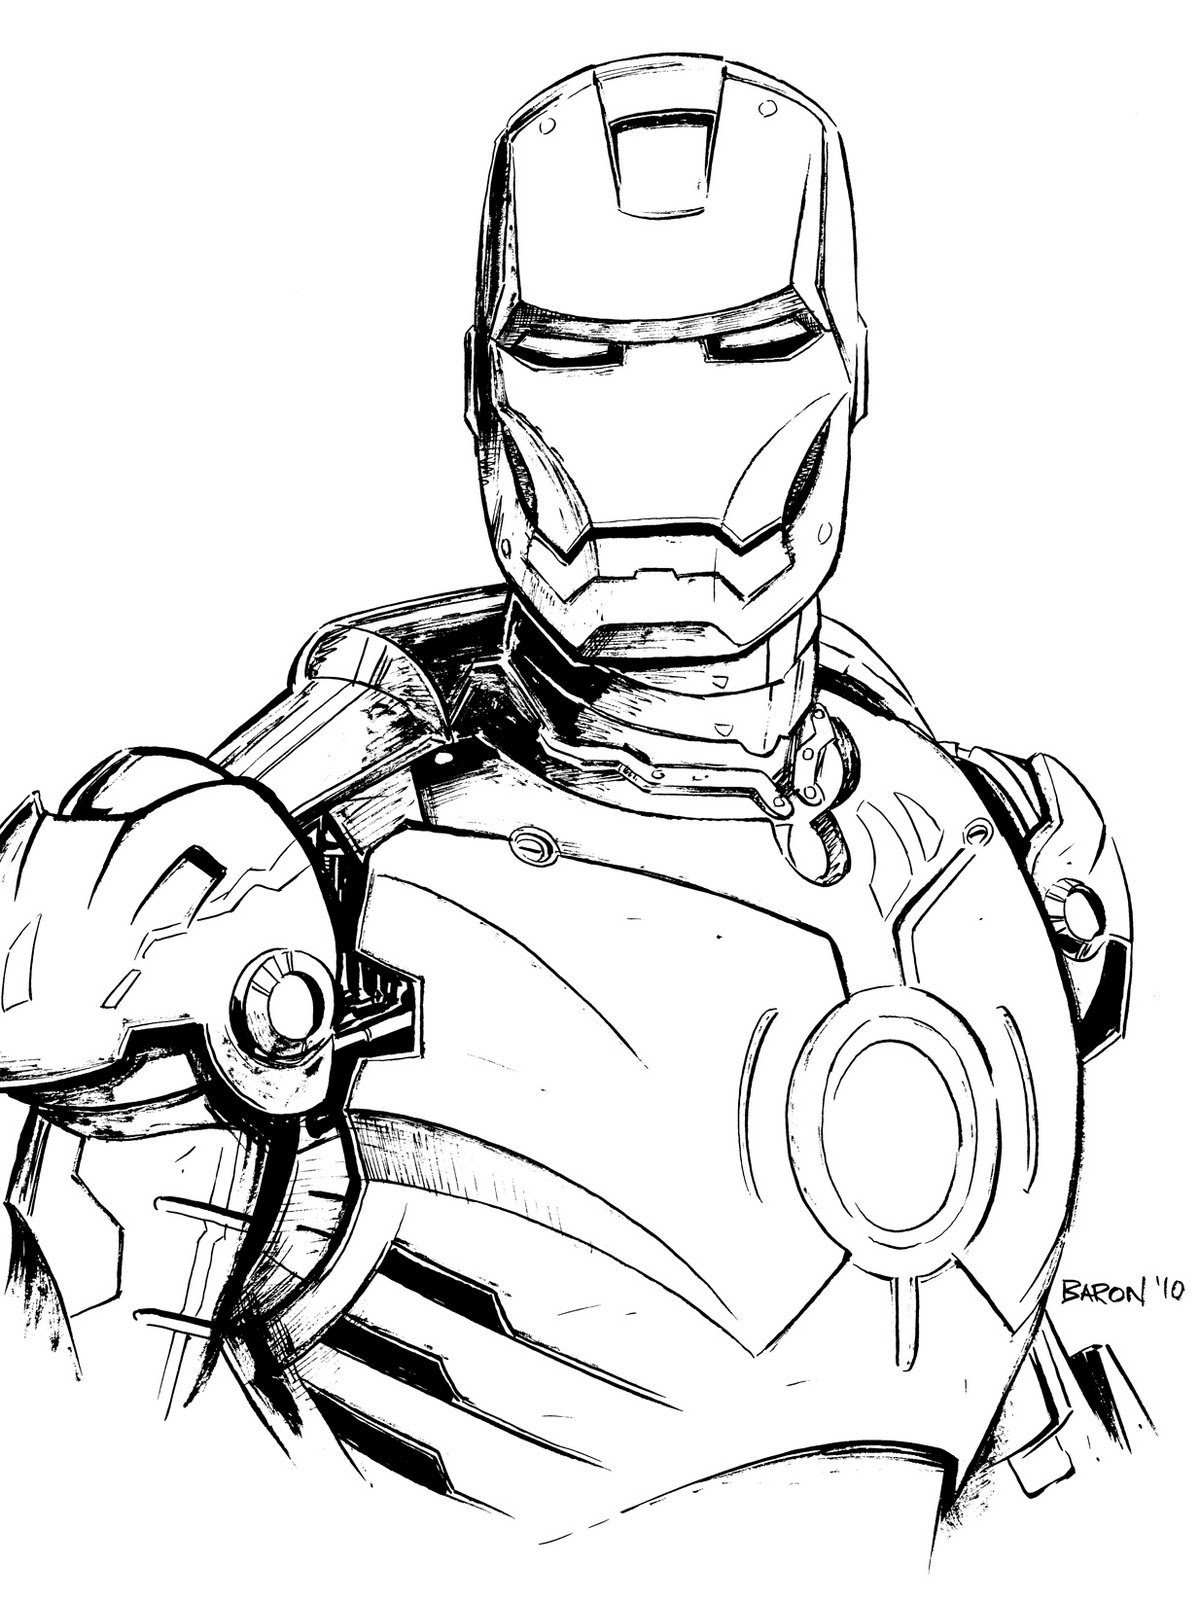 ironman colouring free printable iron man coloring pages for kids ironman colouring 1 2